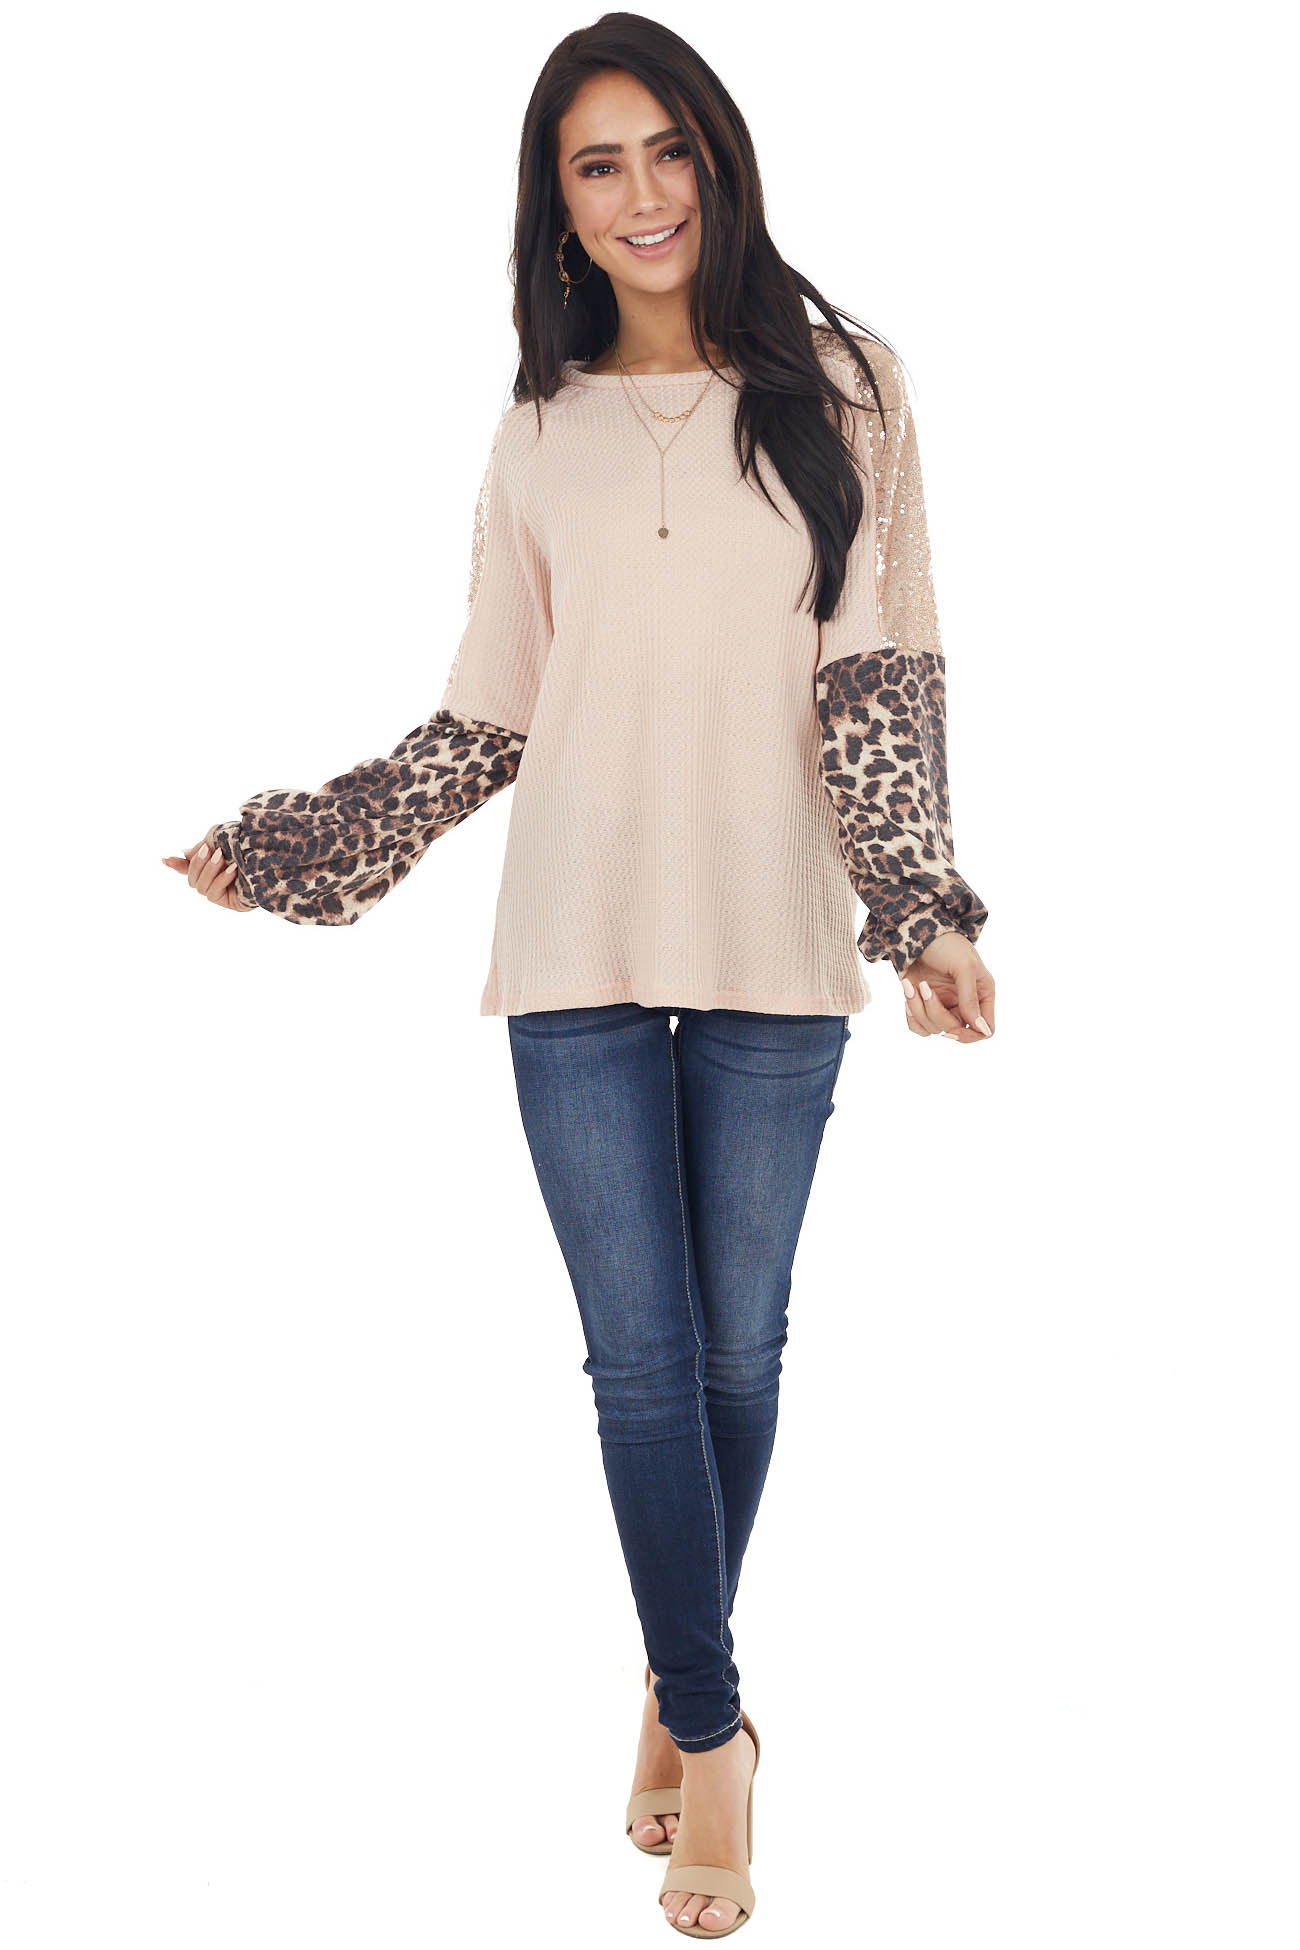 Blush Waffle Knit Top with Sequin and Leopard Print Sleeves